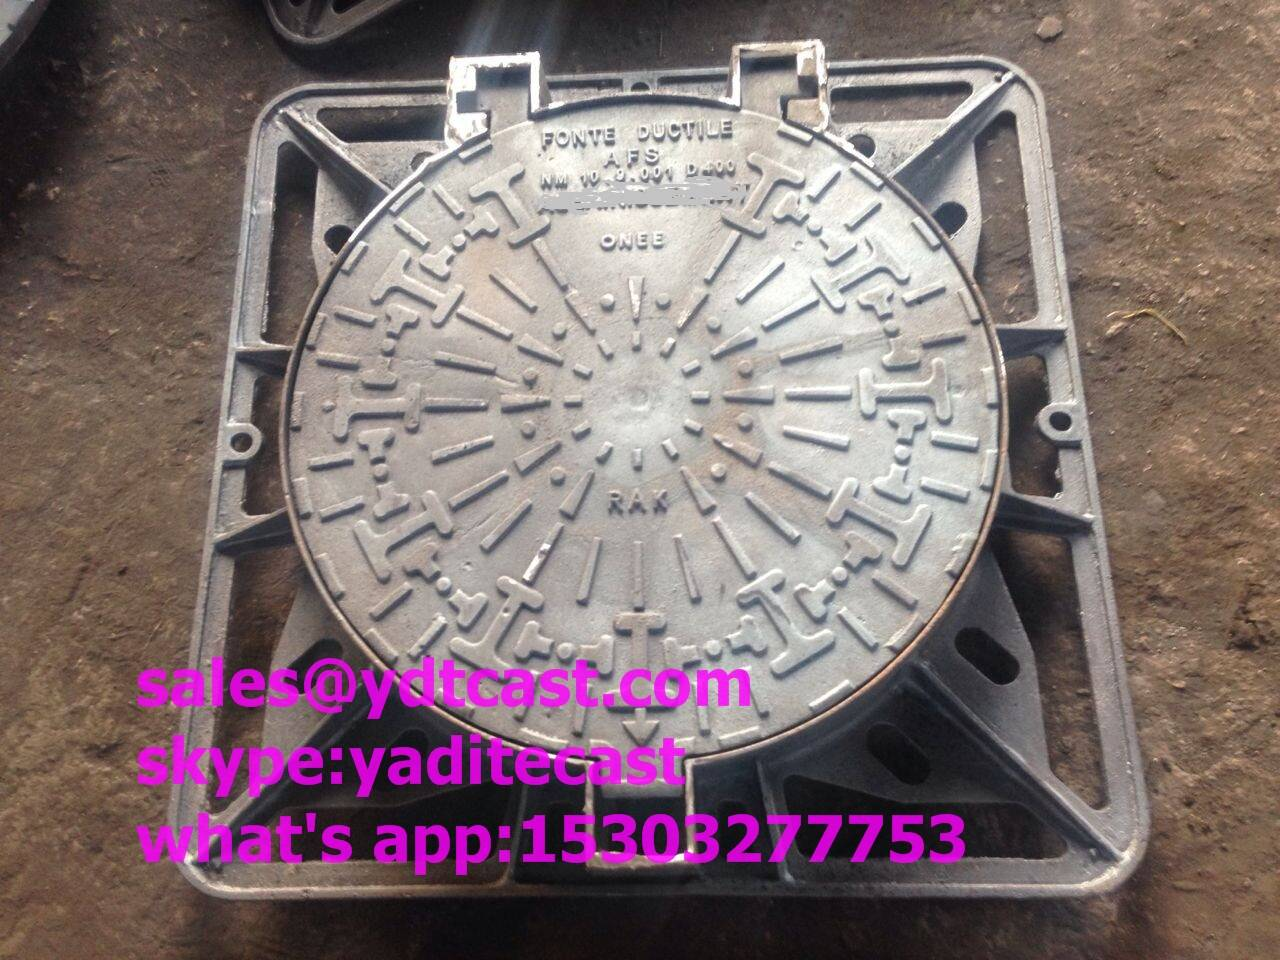 cast iron manhole cover/ high quality manhole cover heavry duty new design